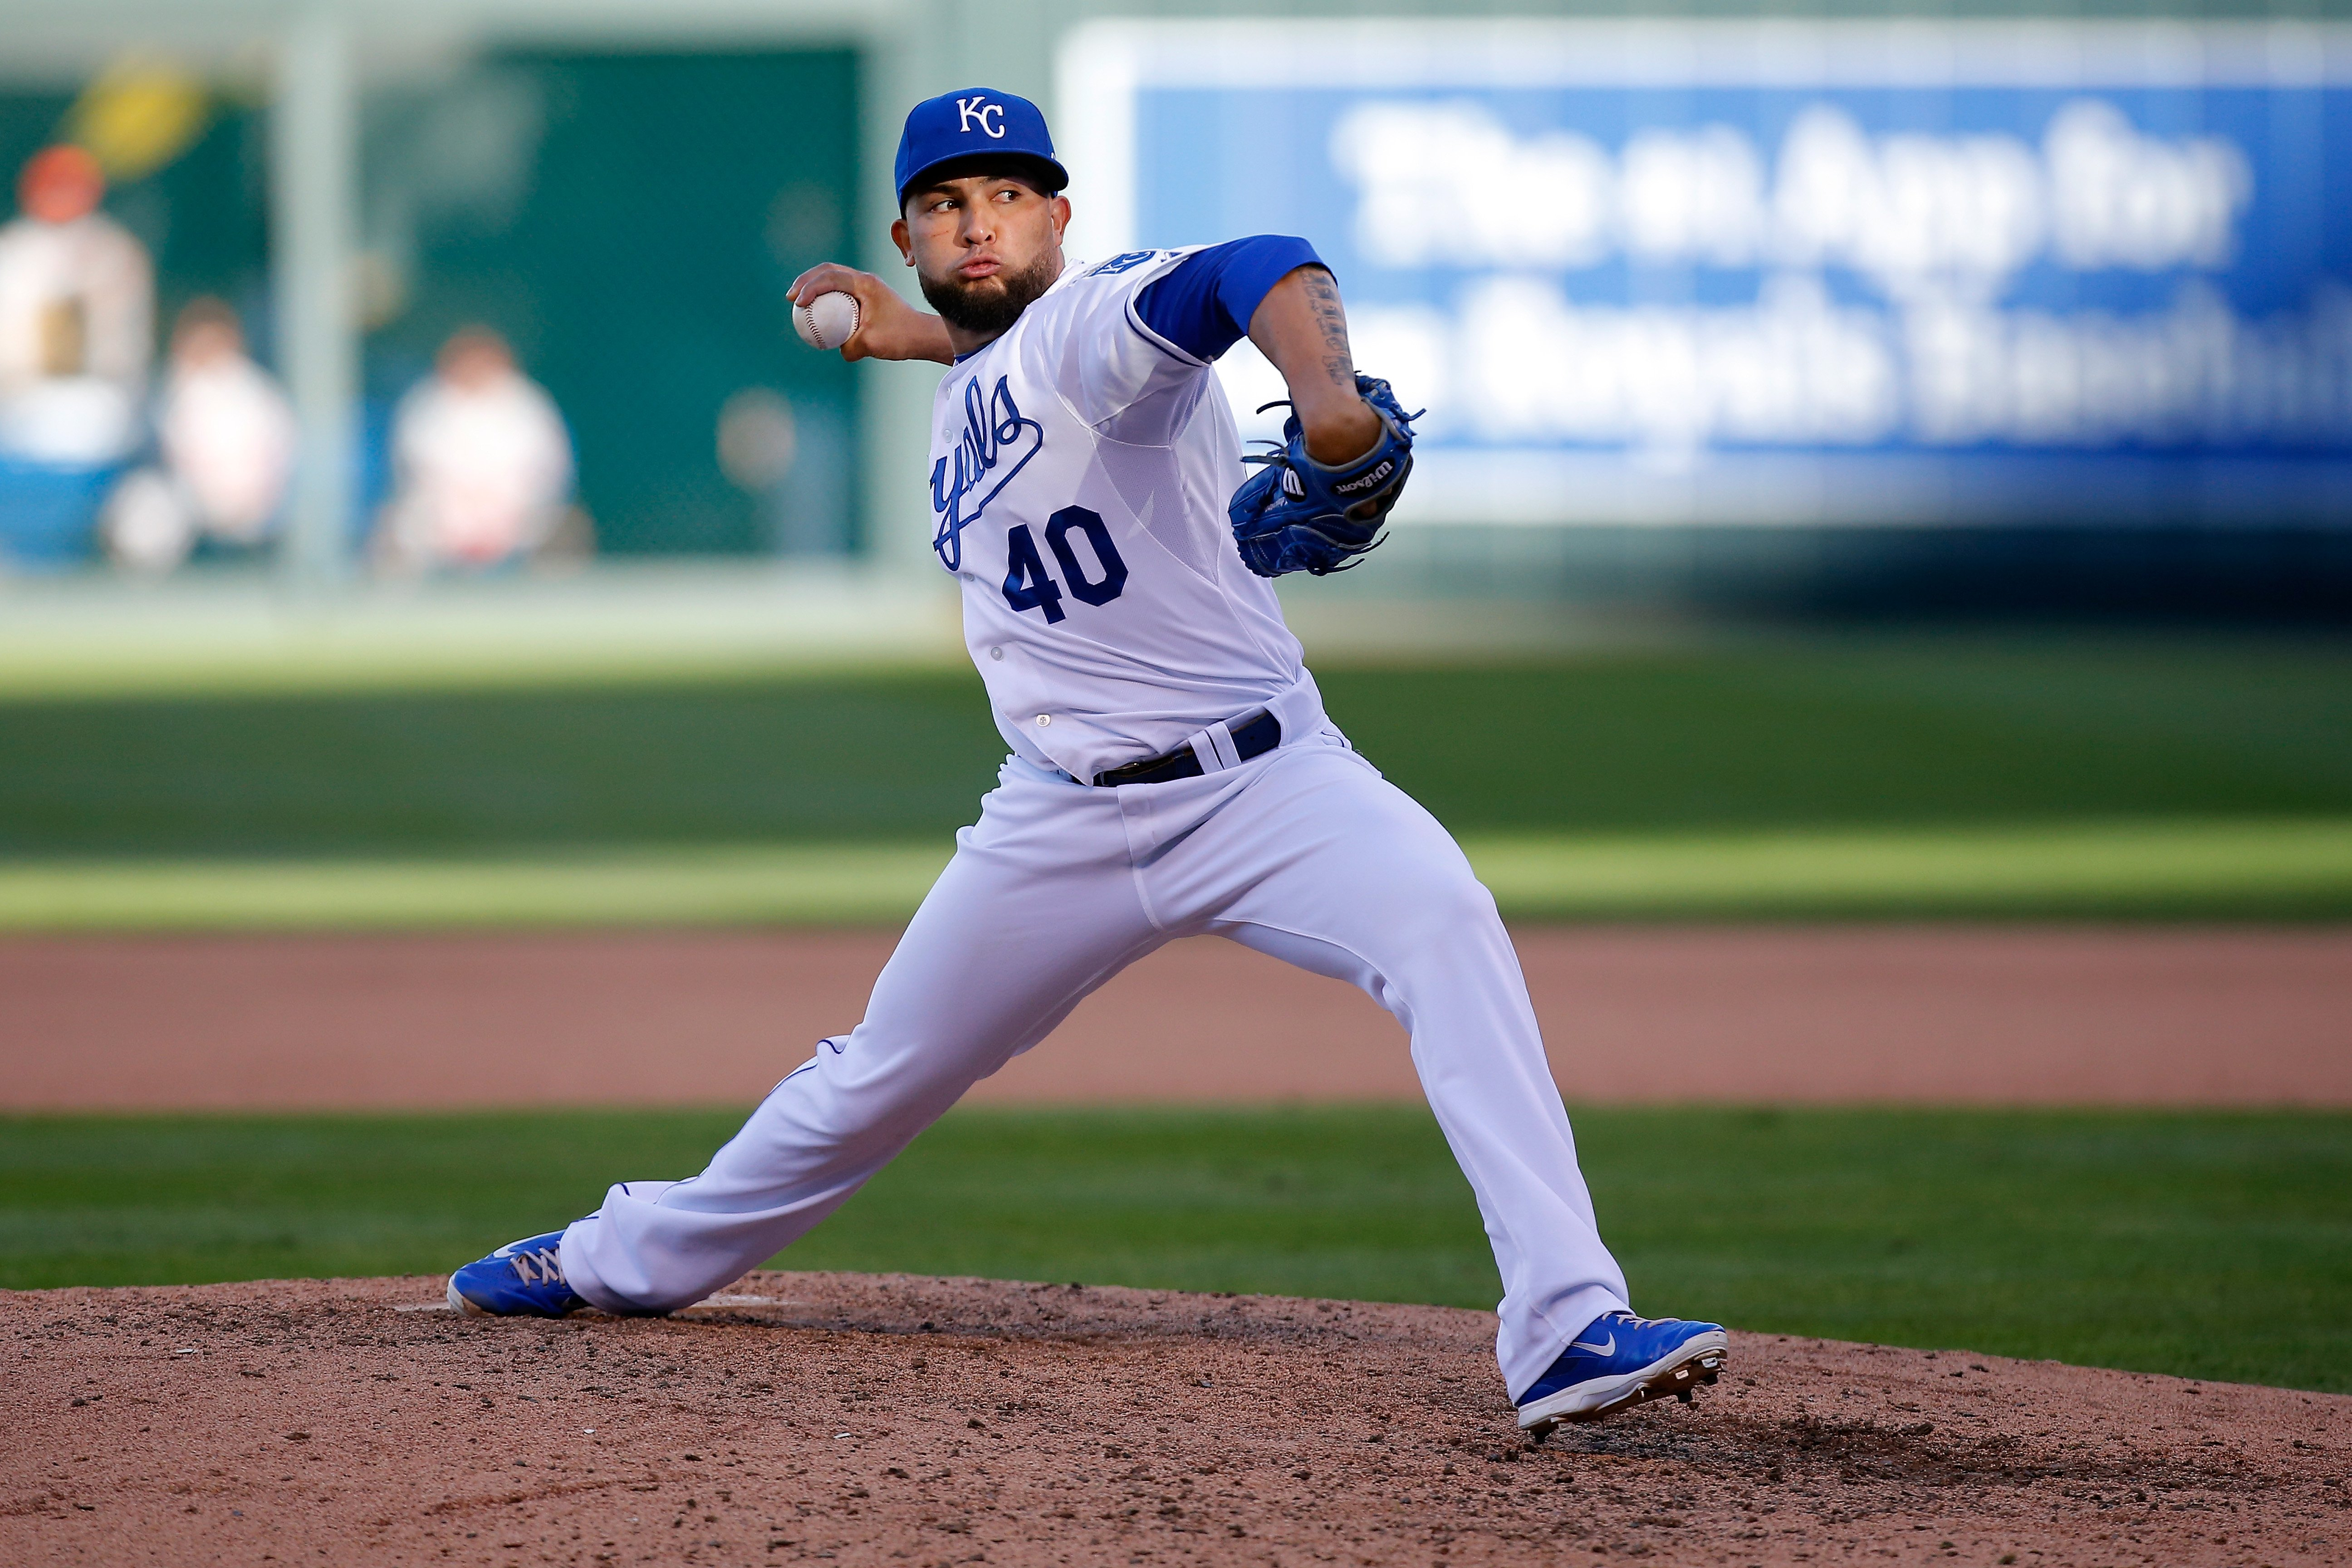 Kelvin Herrera of the Kansas City Royals throws a pitch in the sixth inning against the Baltimore Orioles during Game Four of the American League Championship Series at Kauffman Stadium on Oct. 15, 2014 in Kansas City, Missouri.